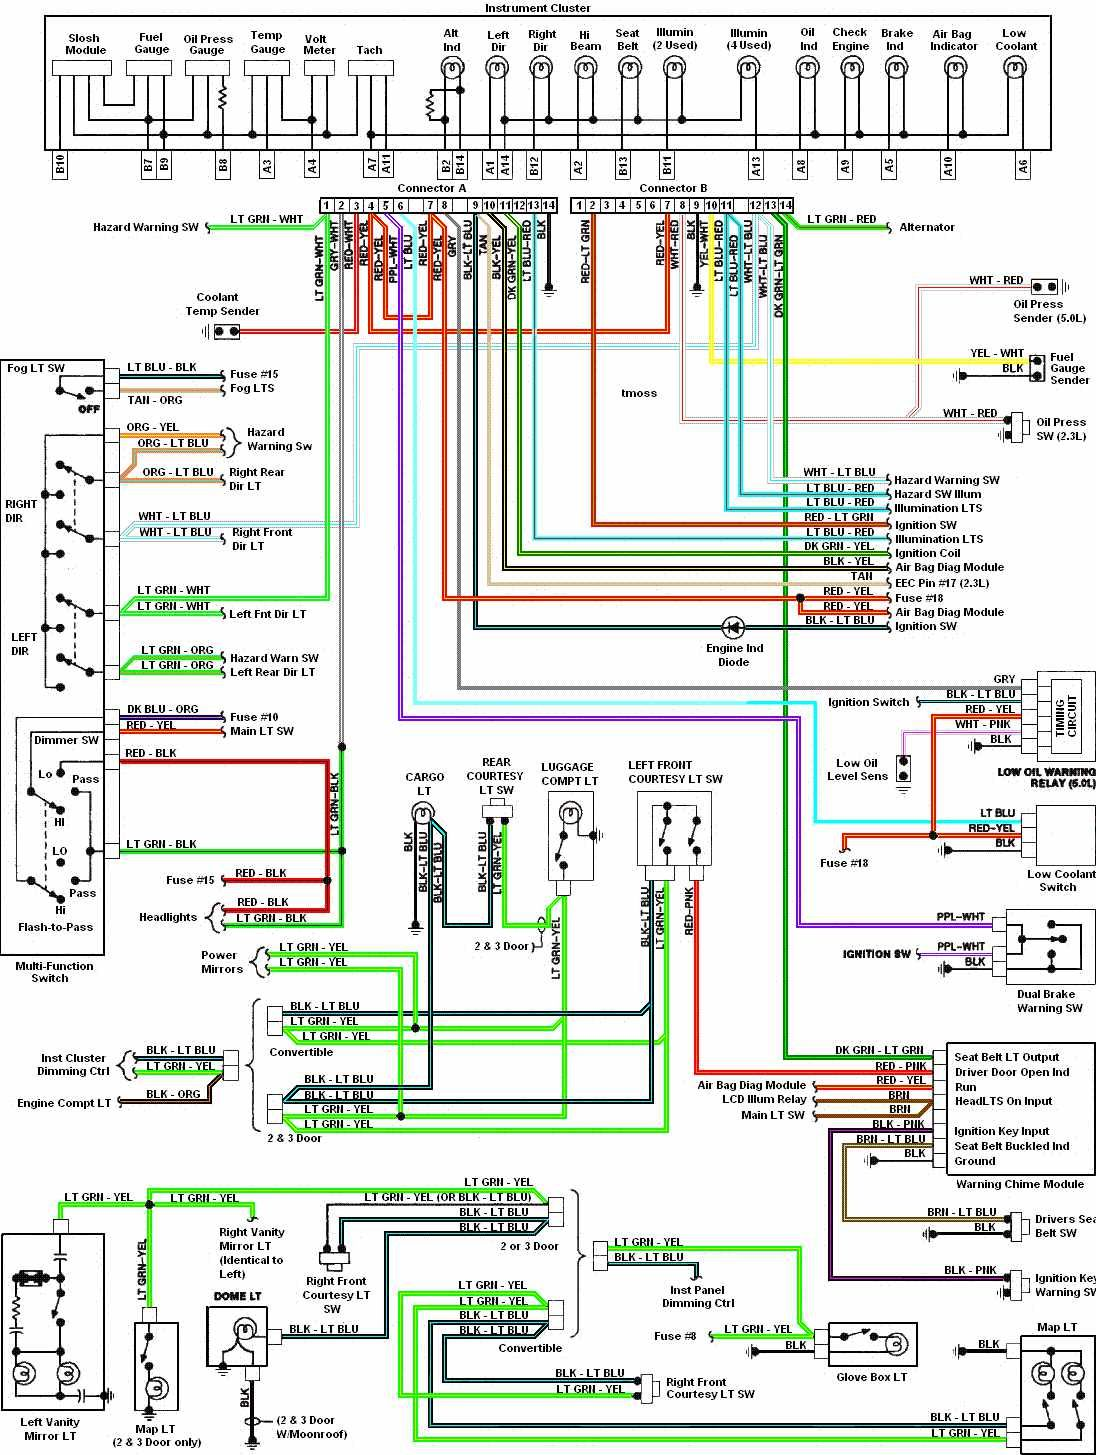 1980 Ford Mustang Wiring - Wiring Diagram Recent loan-grand -  loan-grand.cosavedereanapoli.it | 1980 Ford Mustang Turn Signal Switch Wiring Diagram |  | loan-grand.cosavedereanapoli.it